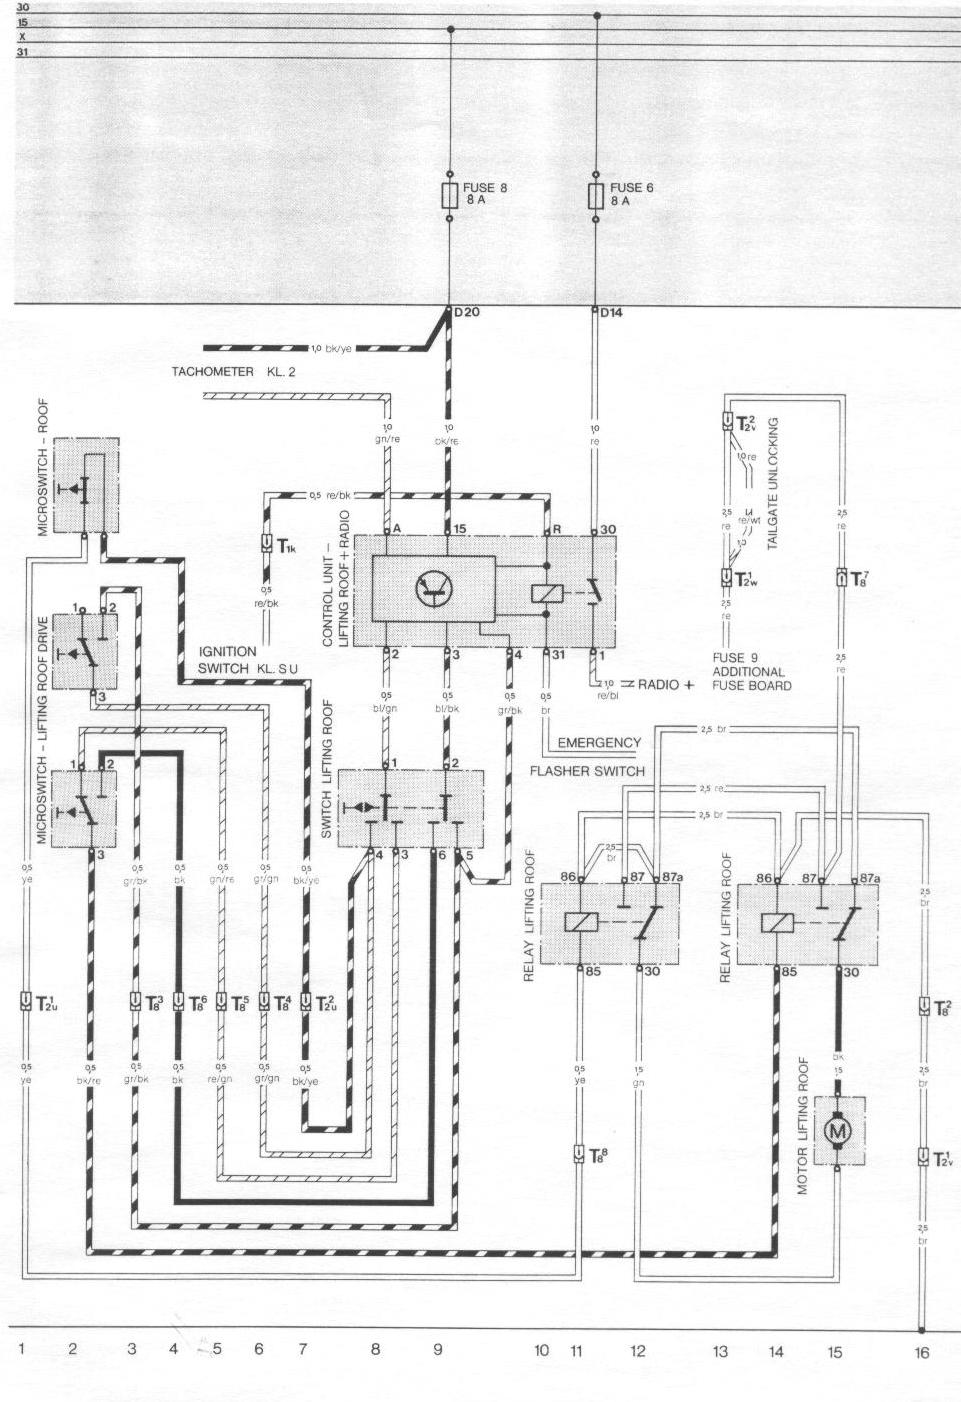 944_84_sunroof pelican parts porsche 924 944 electrical diagrams 1983 porsche 944 fuse box diagram at mifinder.co